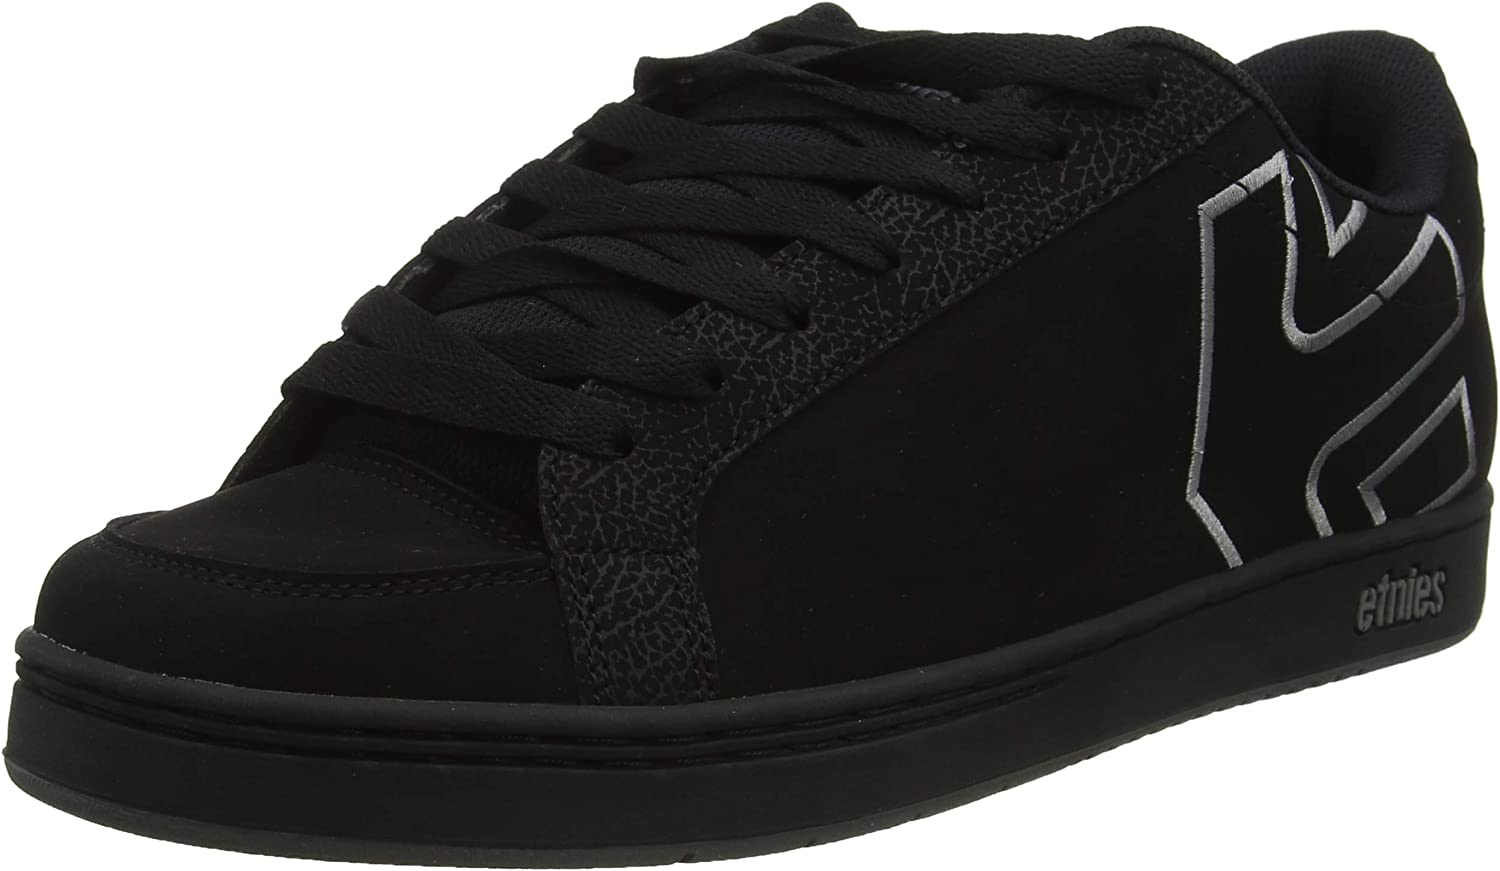 Etnies Men s Kingpin 2 Skate Shoe, Black Grey, 10.5 Medium US